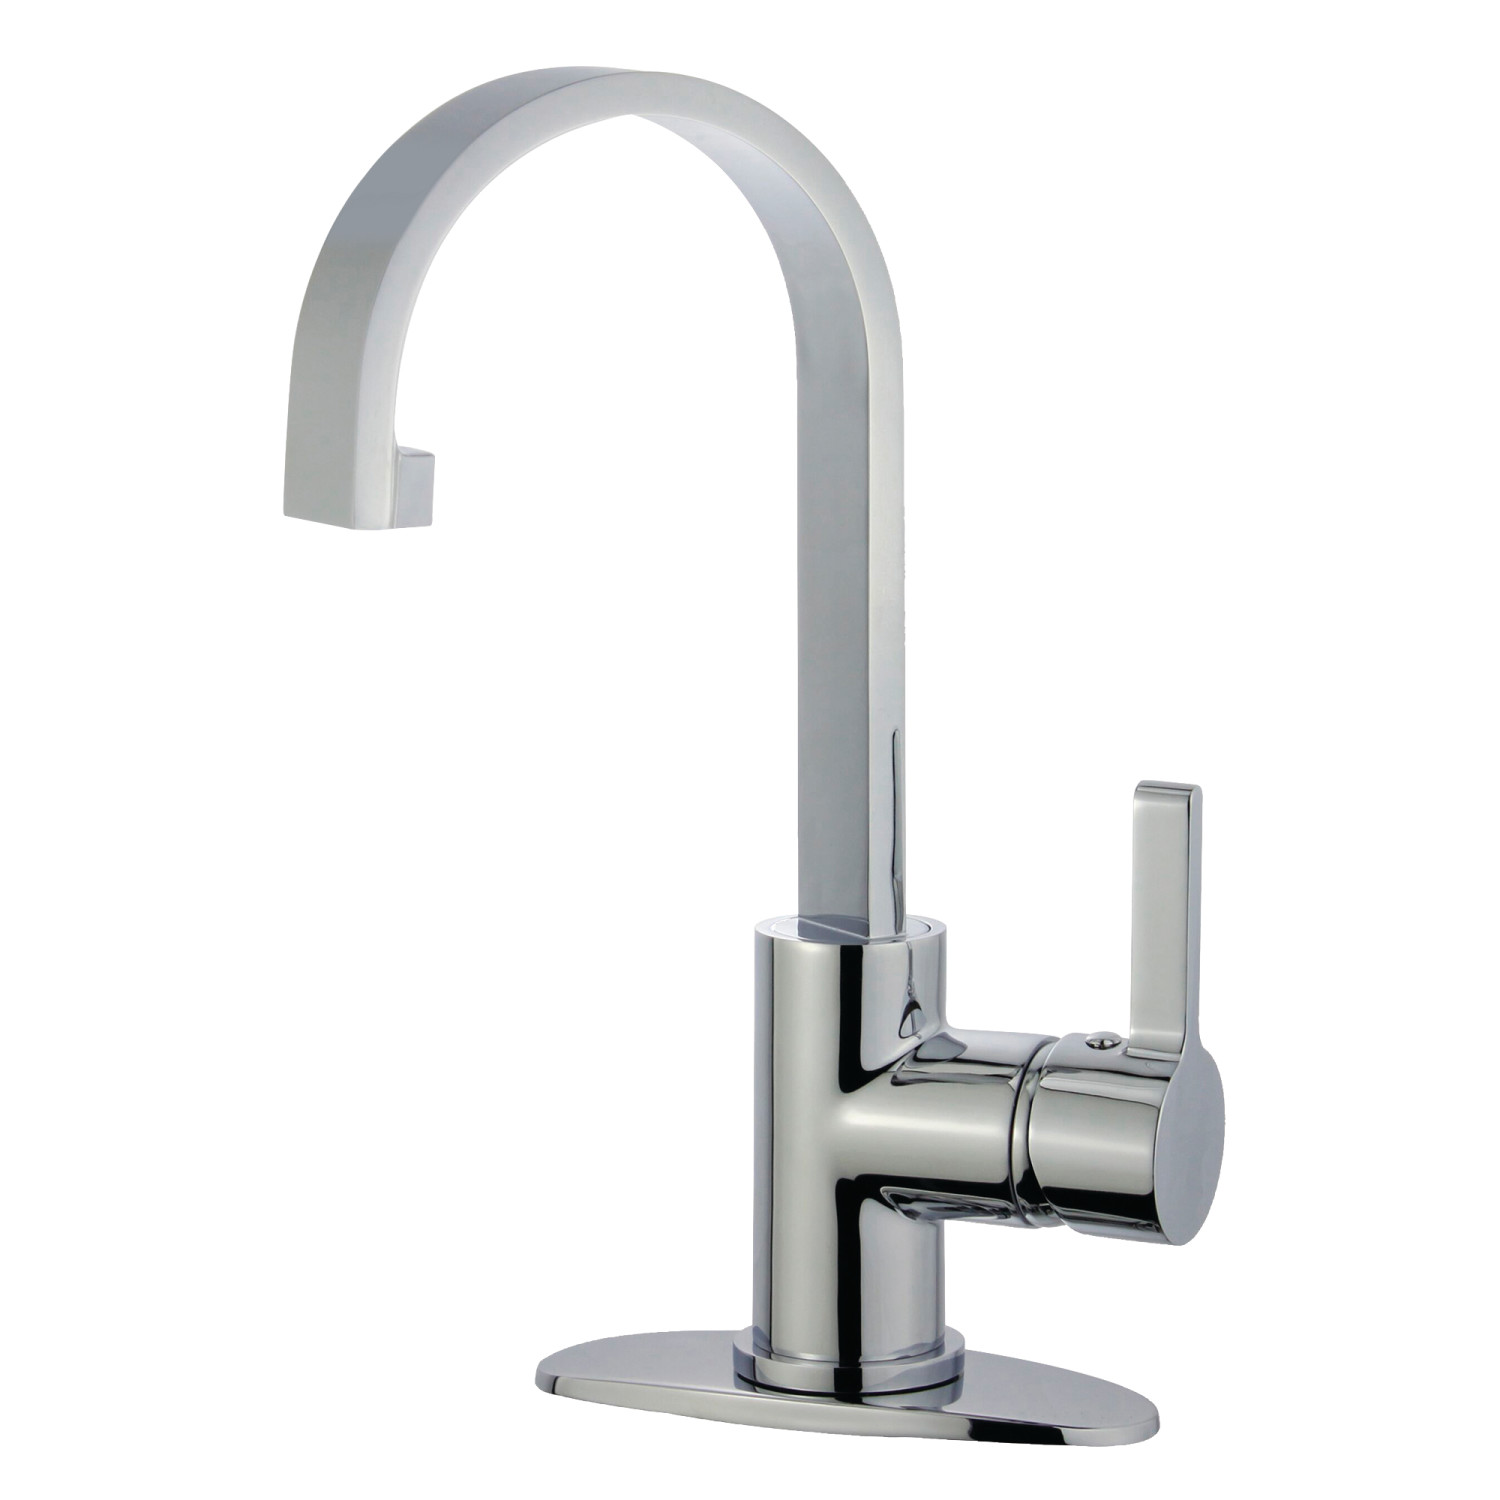 Single-Handle 1-Hole Deck Mounted Bathroom Faucet with Push Pop-Up in Polished Chrome with 5 Finish Option